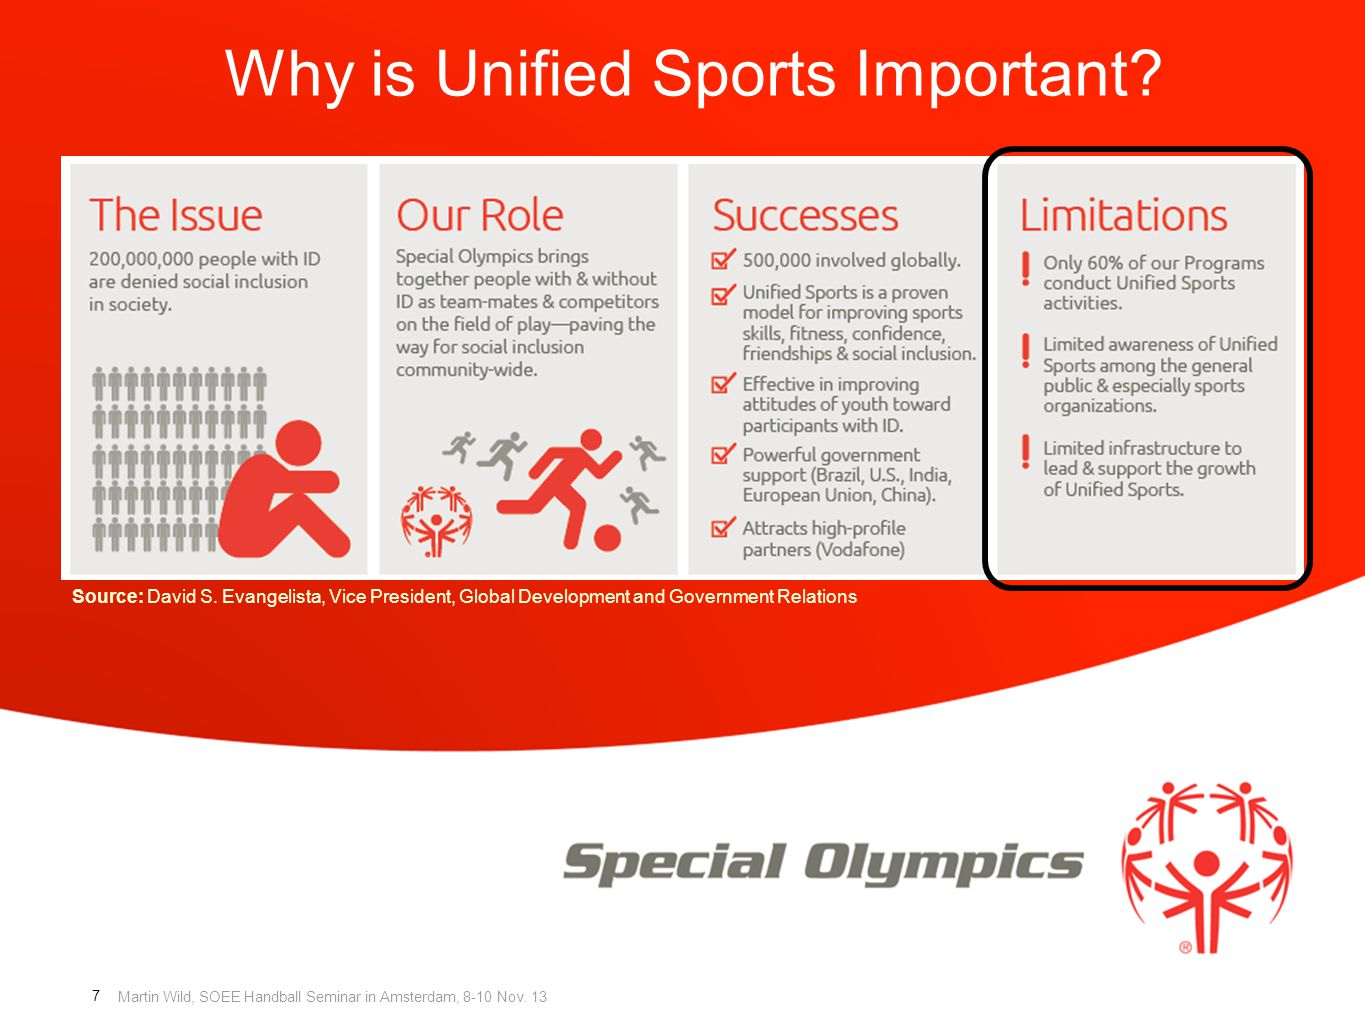 Martin Wild, SOEE Handball Seminar in Amsterdam, 8-10 Nov. 13 7 Why is Unified Sports Important? Source: David S. Evangelista, Vice President, Global